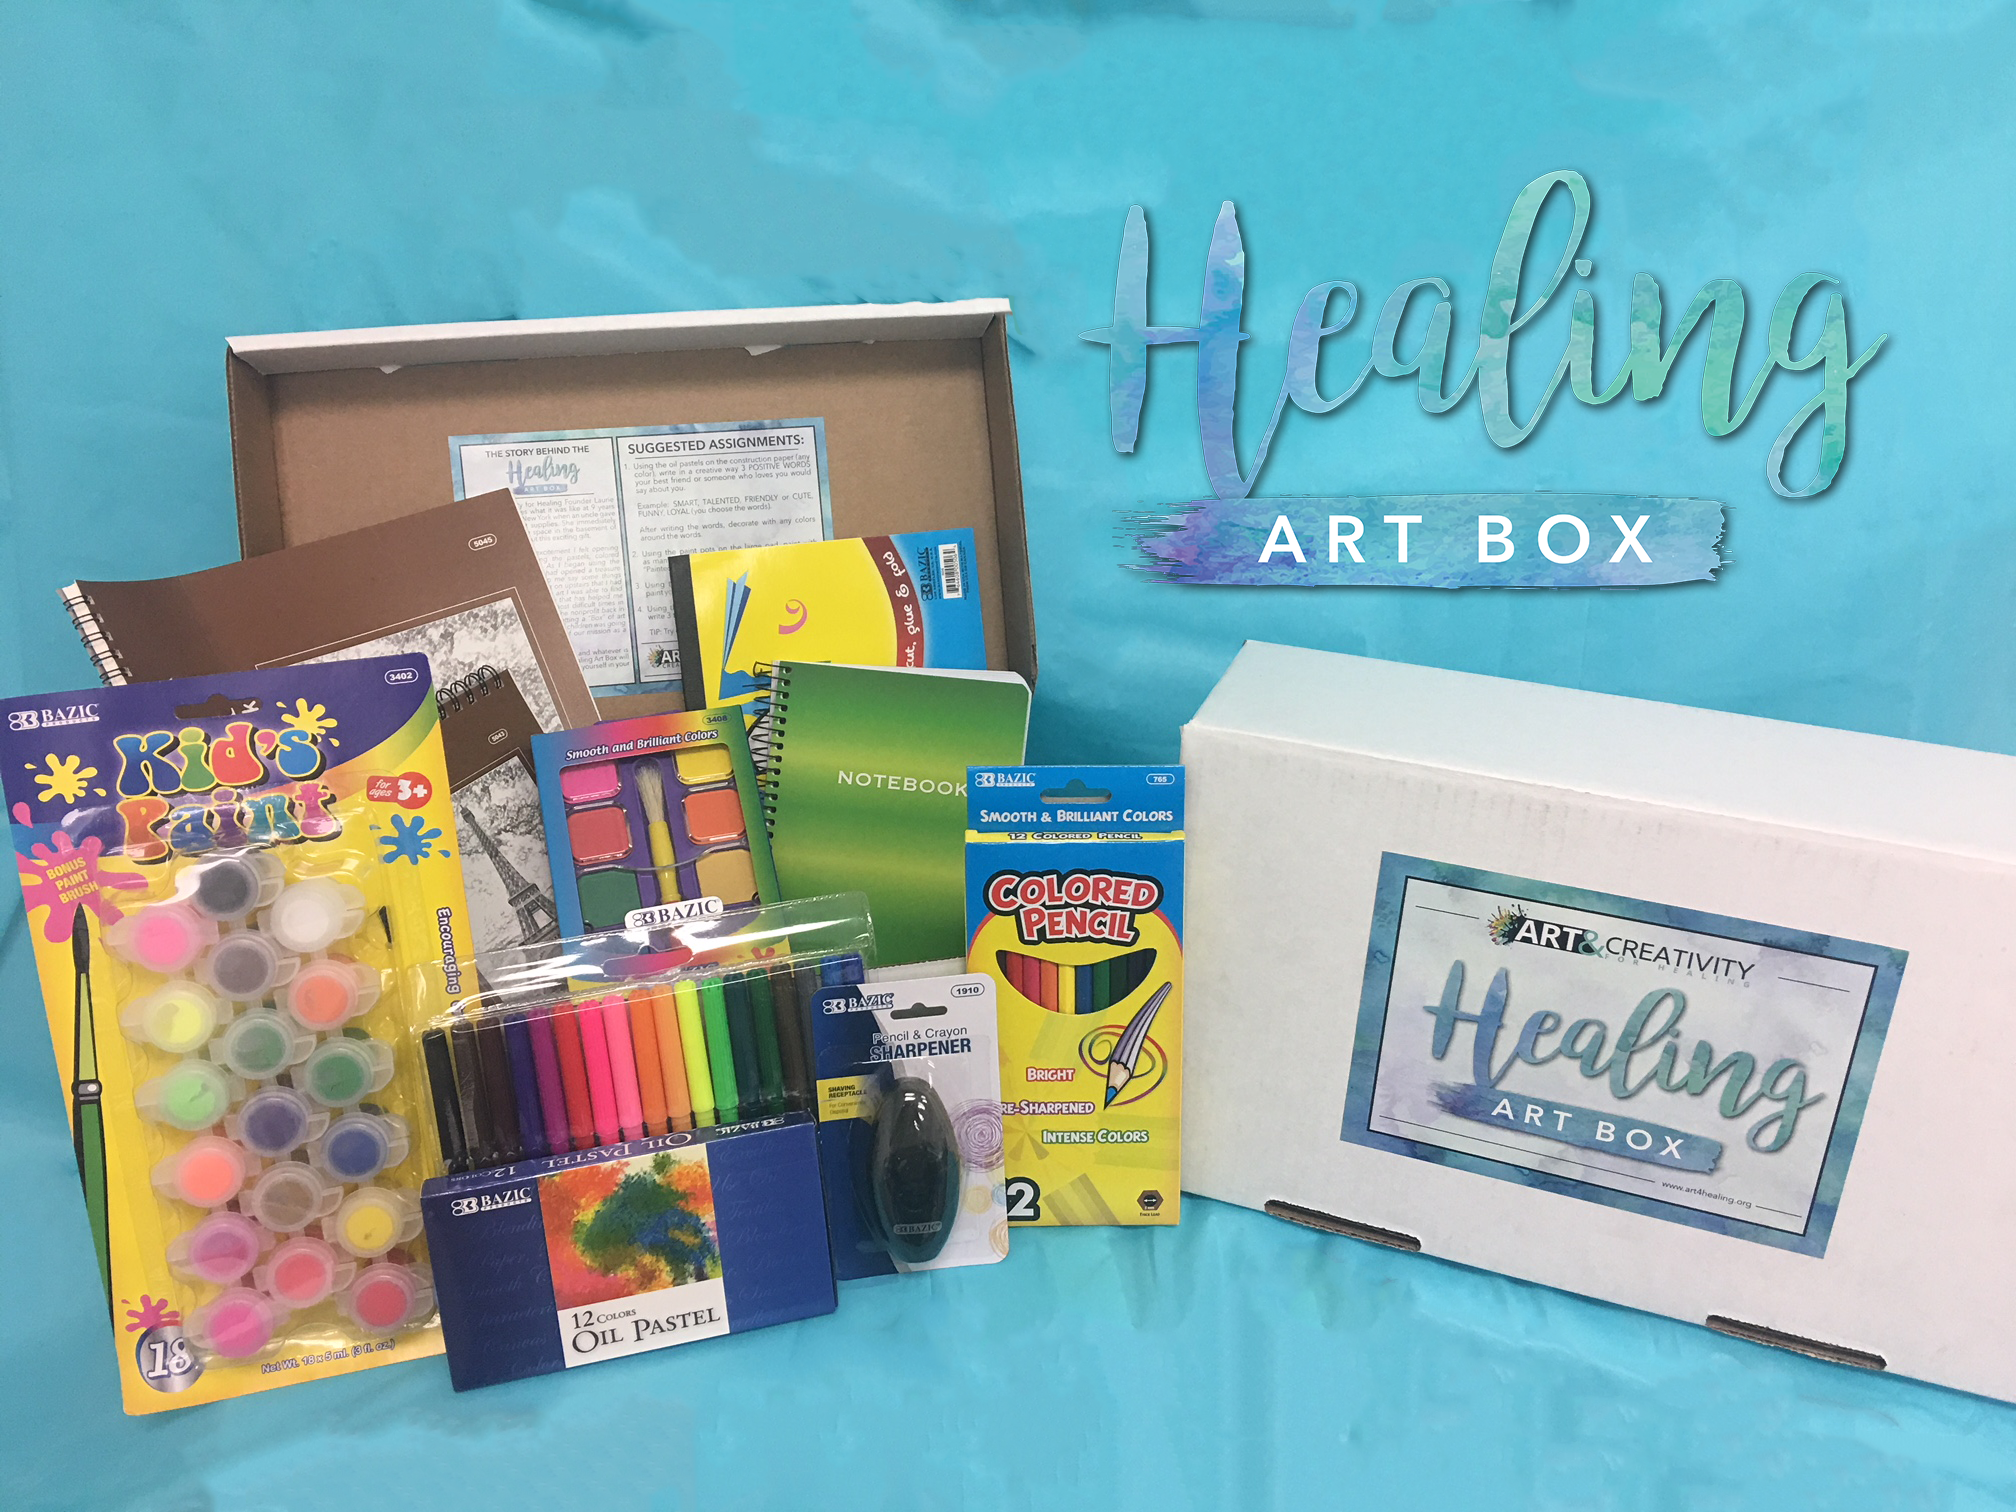 Healing Art Box Contents: